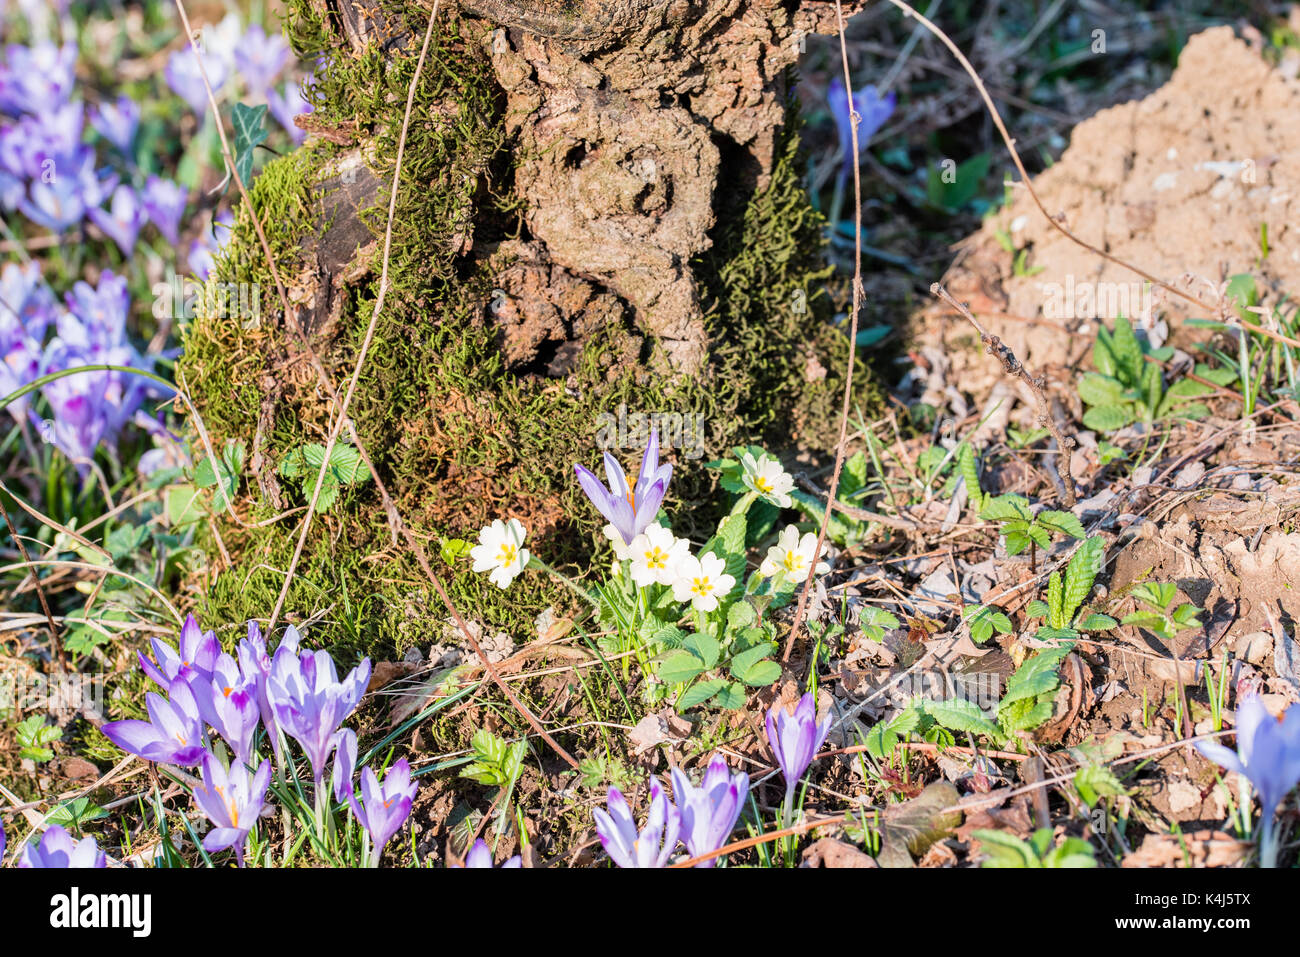 Chestnut Curls And Spring Flowers In The Undergrowth Crocus And